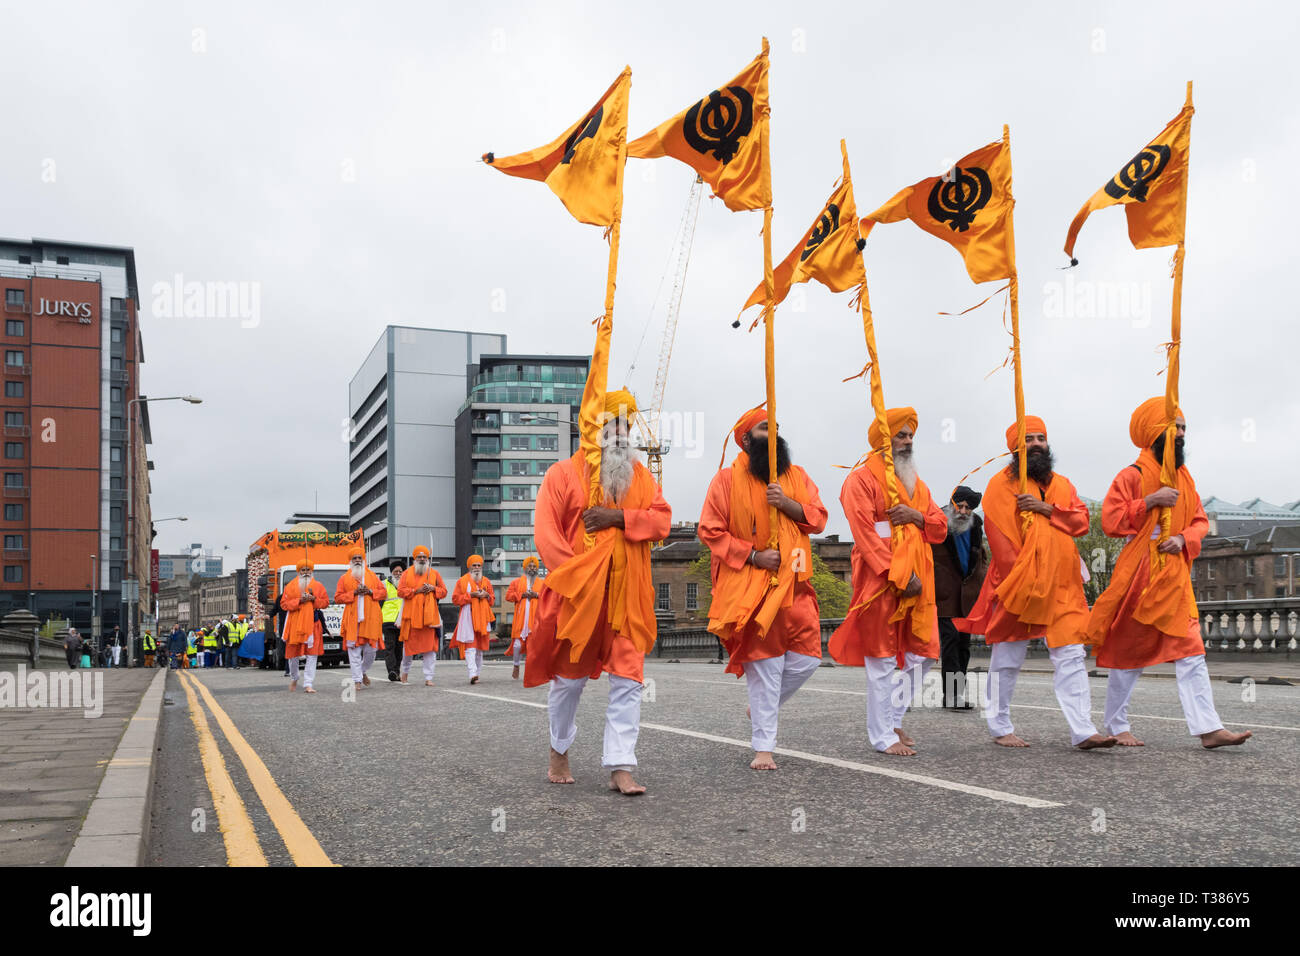 Glasgow, Scotland, UK. 7th April 2019. Sikhs in Glasgow celebrating the festival of Vaisakhi (or Baisakhi) with a colourful Nagar Kirtan parade aound the city's four Gurdwaras or Sikh temples. Credit: Kay Roxby/Alamy Live News Stock Photo